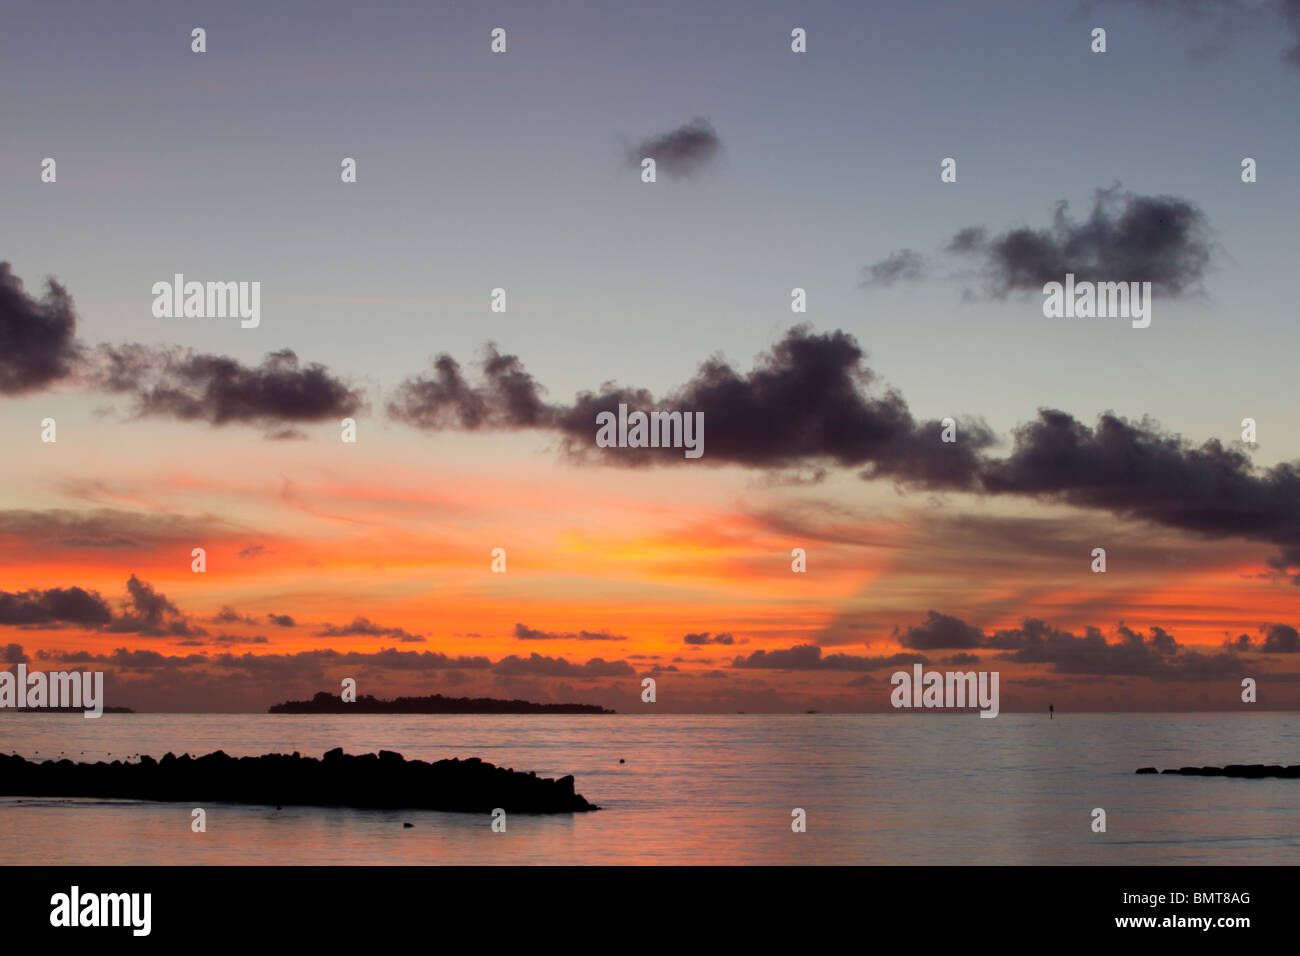 Early morning sunrise over the sea from Pilau Selingan Island, Sabah, Borneo, Malaysia. - Stock Image